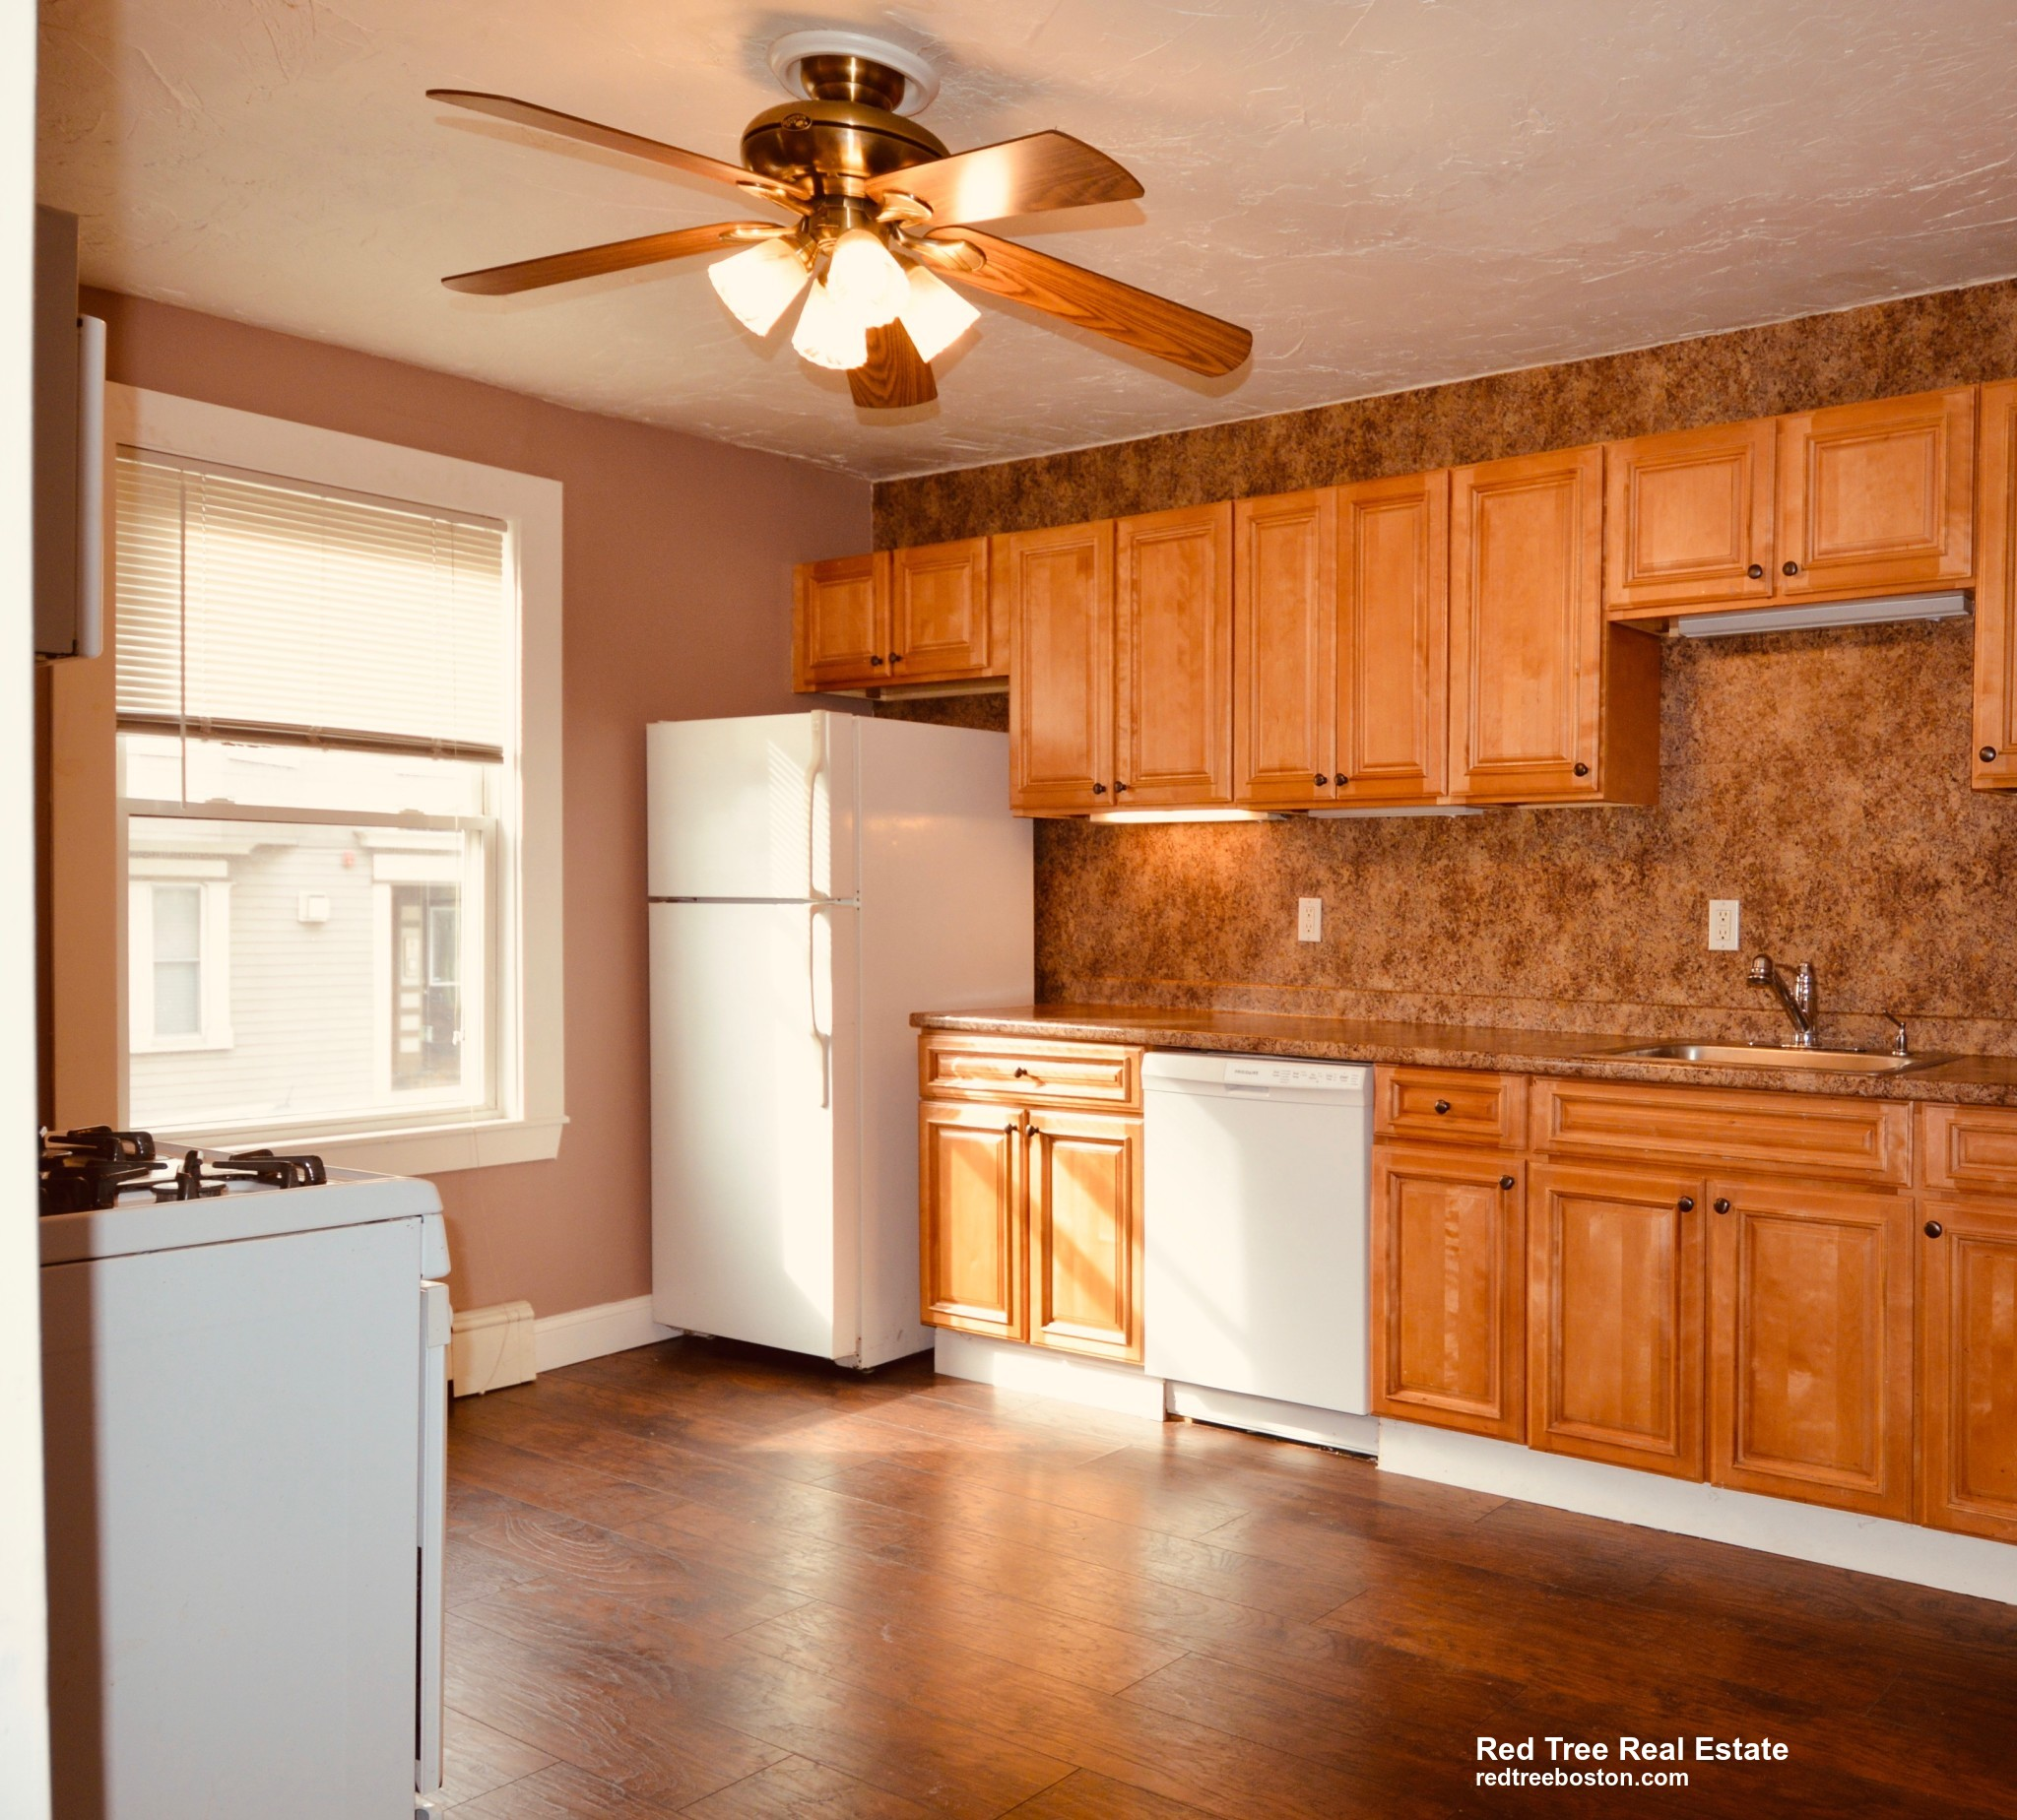 East Eighth St. (Room for rent), Boston, MA 02127